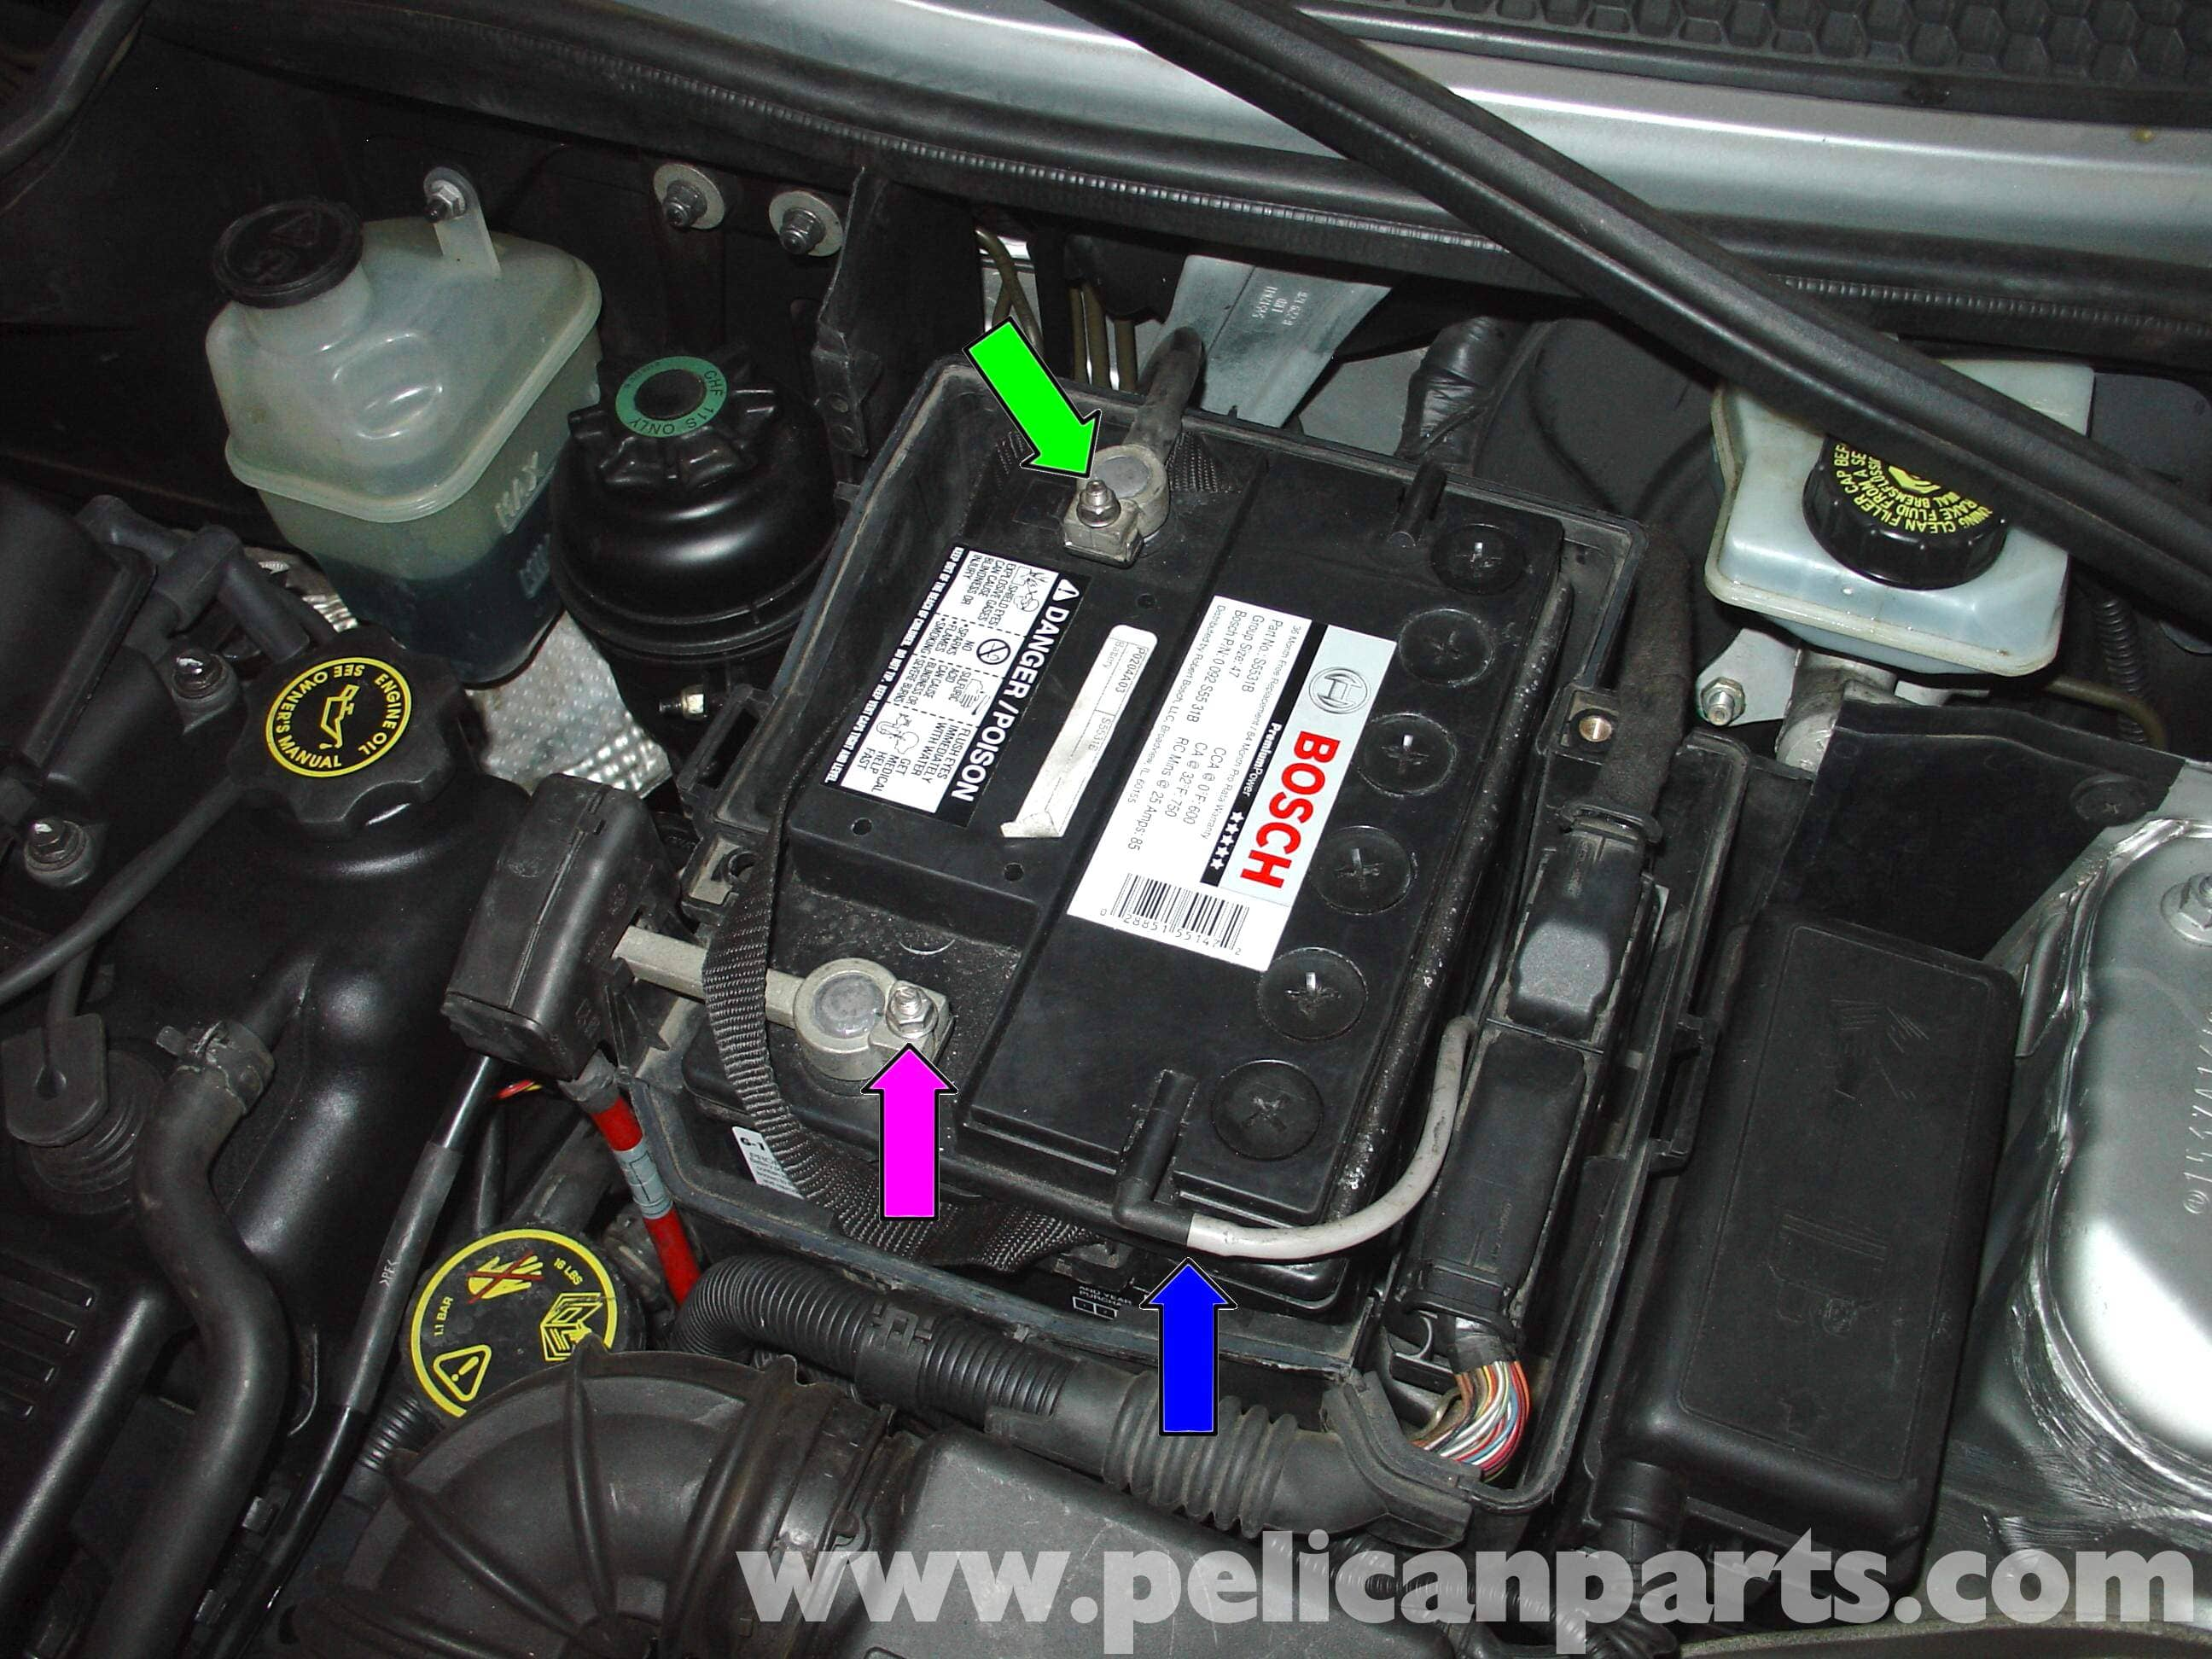 Honda Accord Fuse Box Diagram 374841 moreover Honda Ac System Diagram likewise 2018 Chevrolet K5 Blazer besides Interior Photos further Transmission Issue 932361. on acura mdx parts diagram